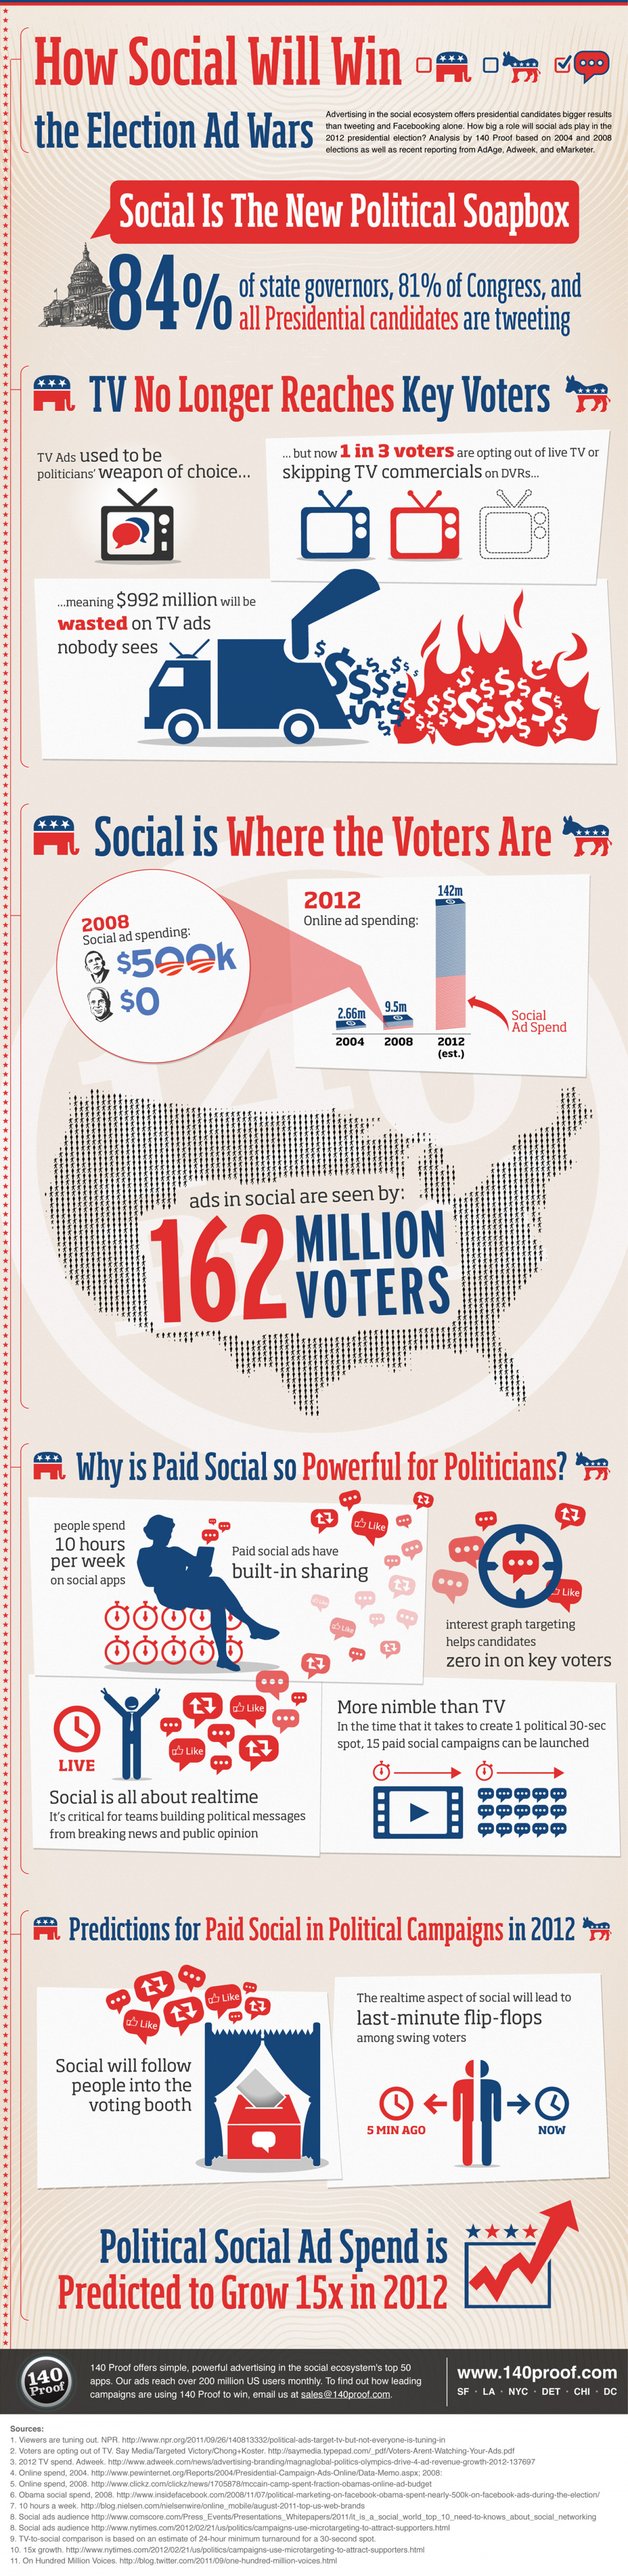 How Social Ads Will Win the Election Ad Wars Infographic